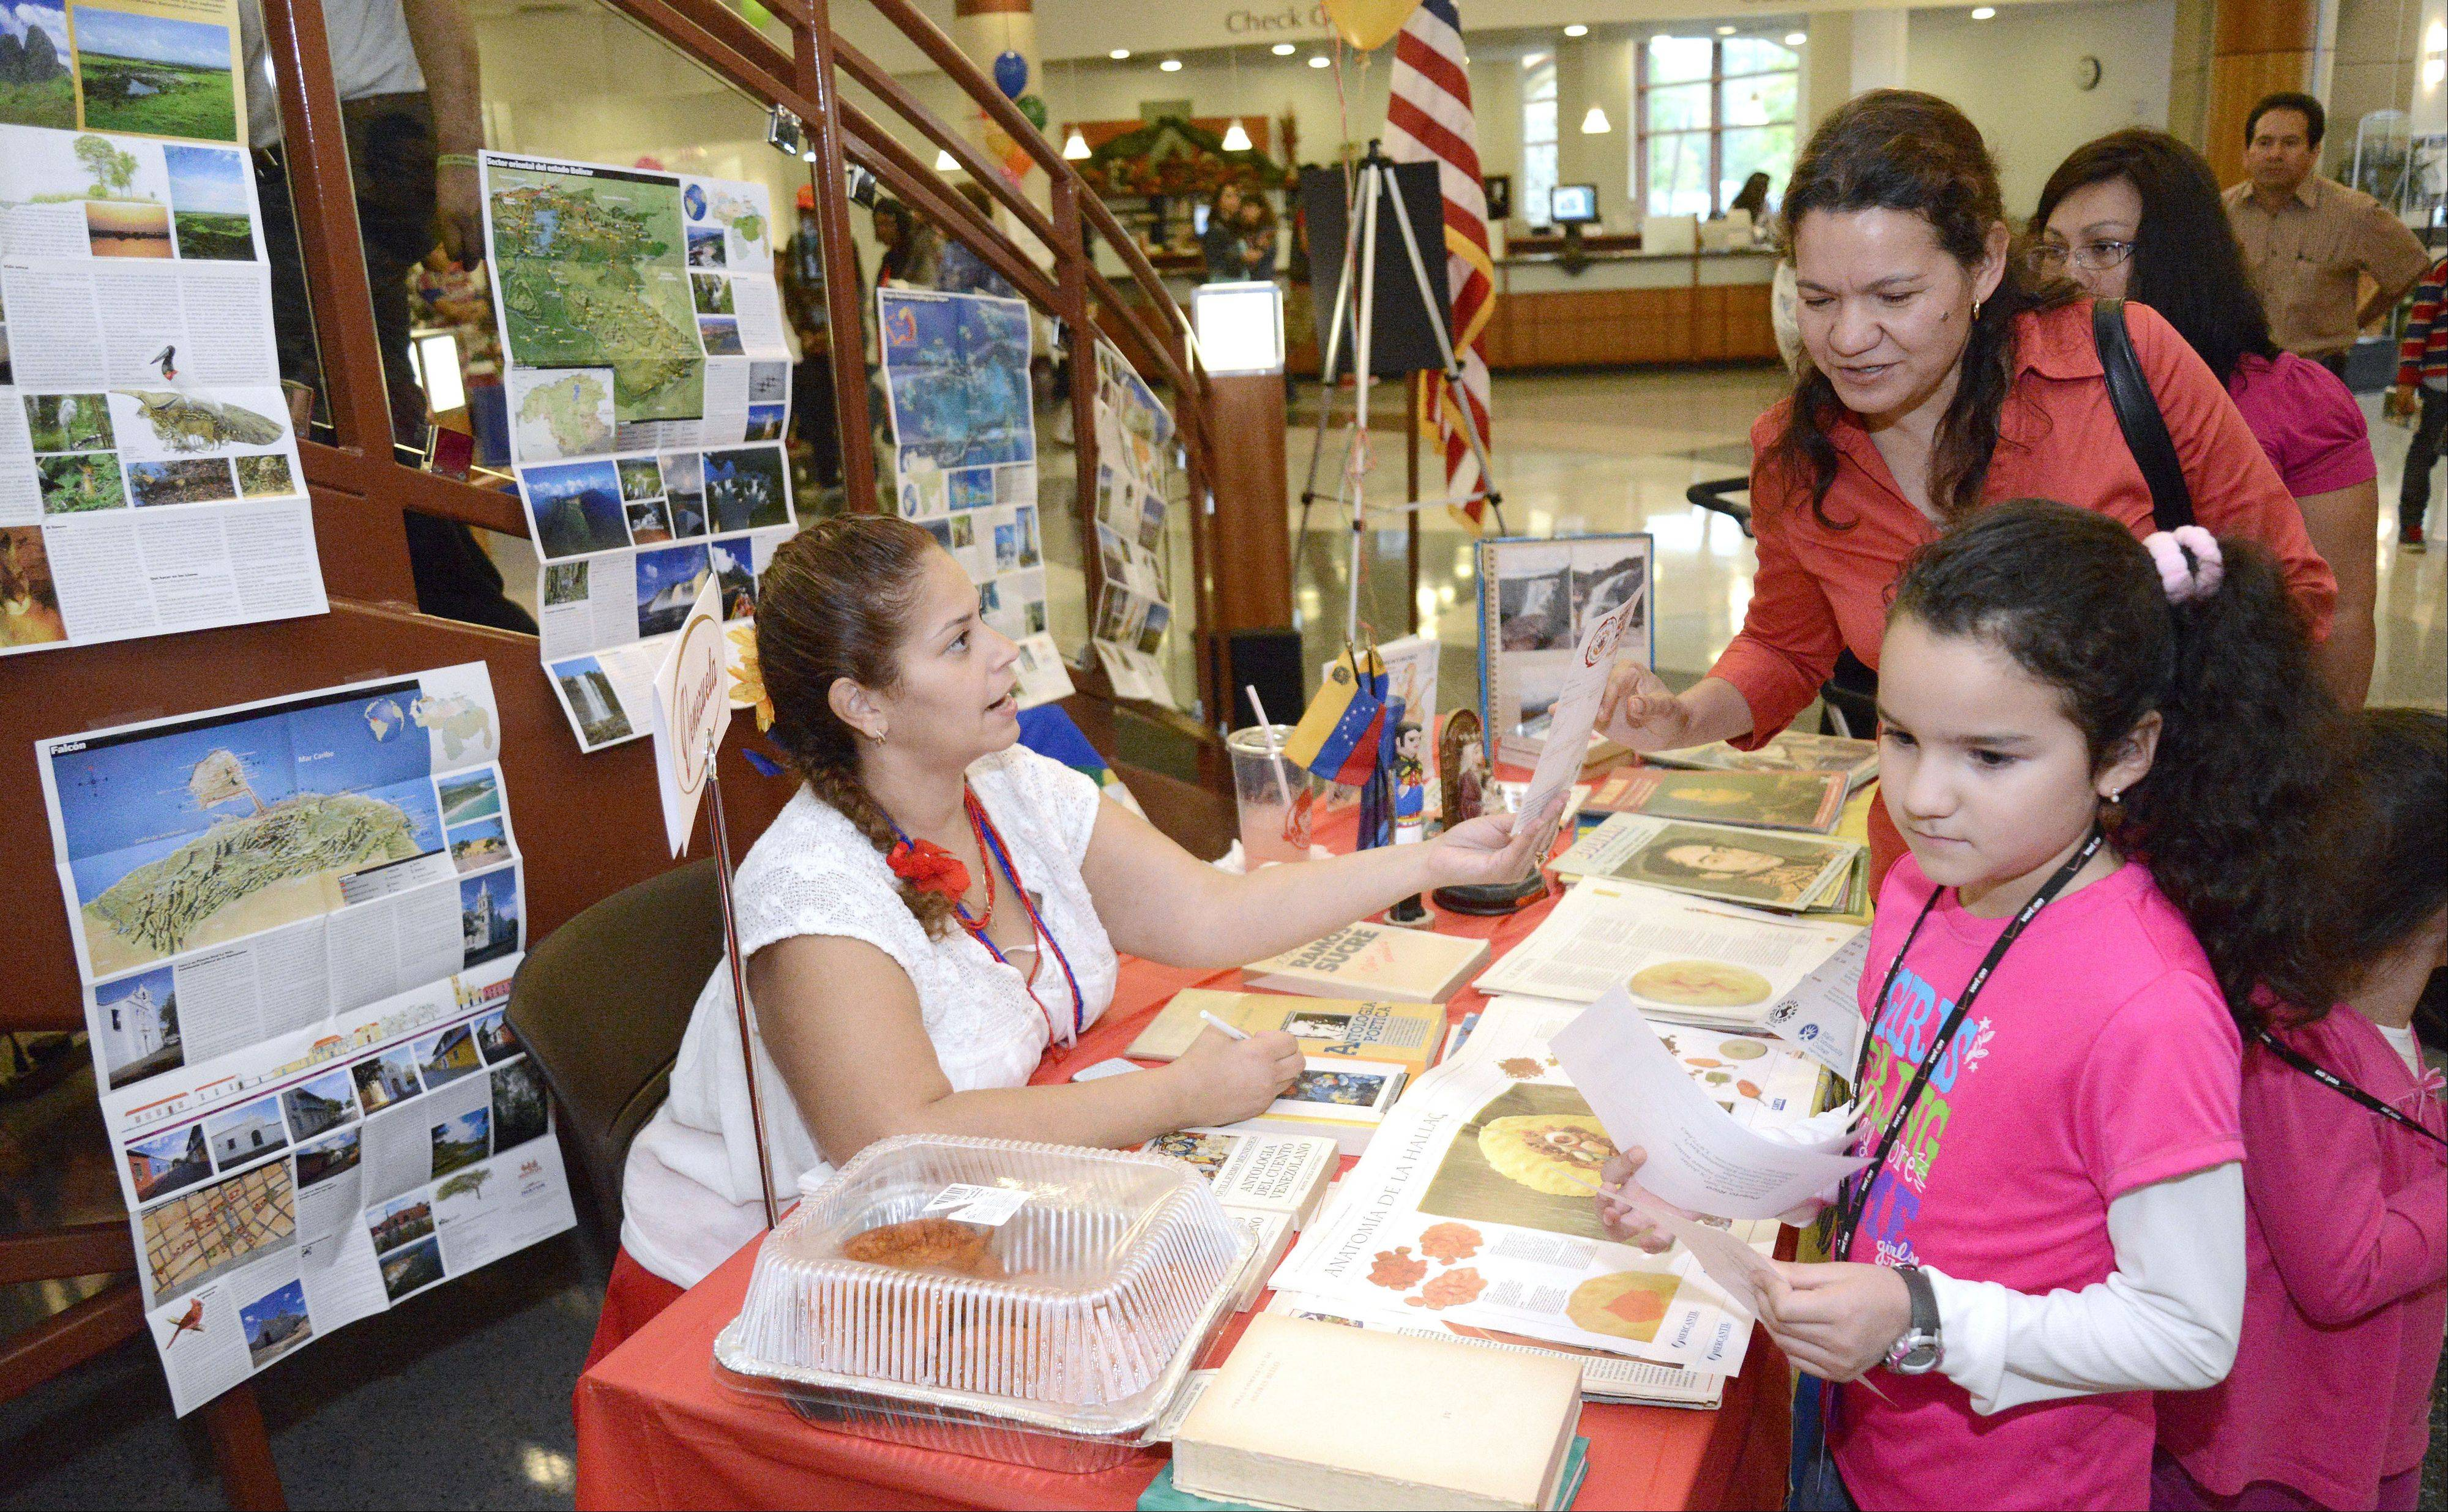 Navi Gonzalez of Elgin, left, talks to about her Venezuelan heritage to Gloria Melchor and her daughter, Litzy, 8, also of Elgin, at the Hispanic Heritage Month Celebration at Gail Borden Public Library in Elgin on Saturday.